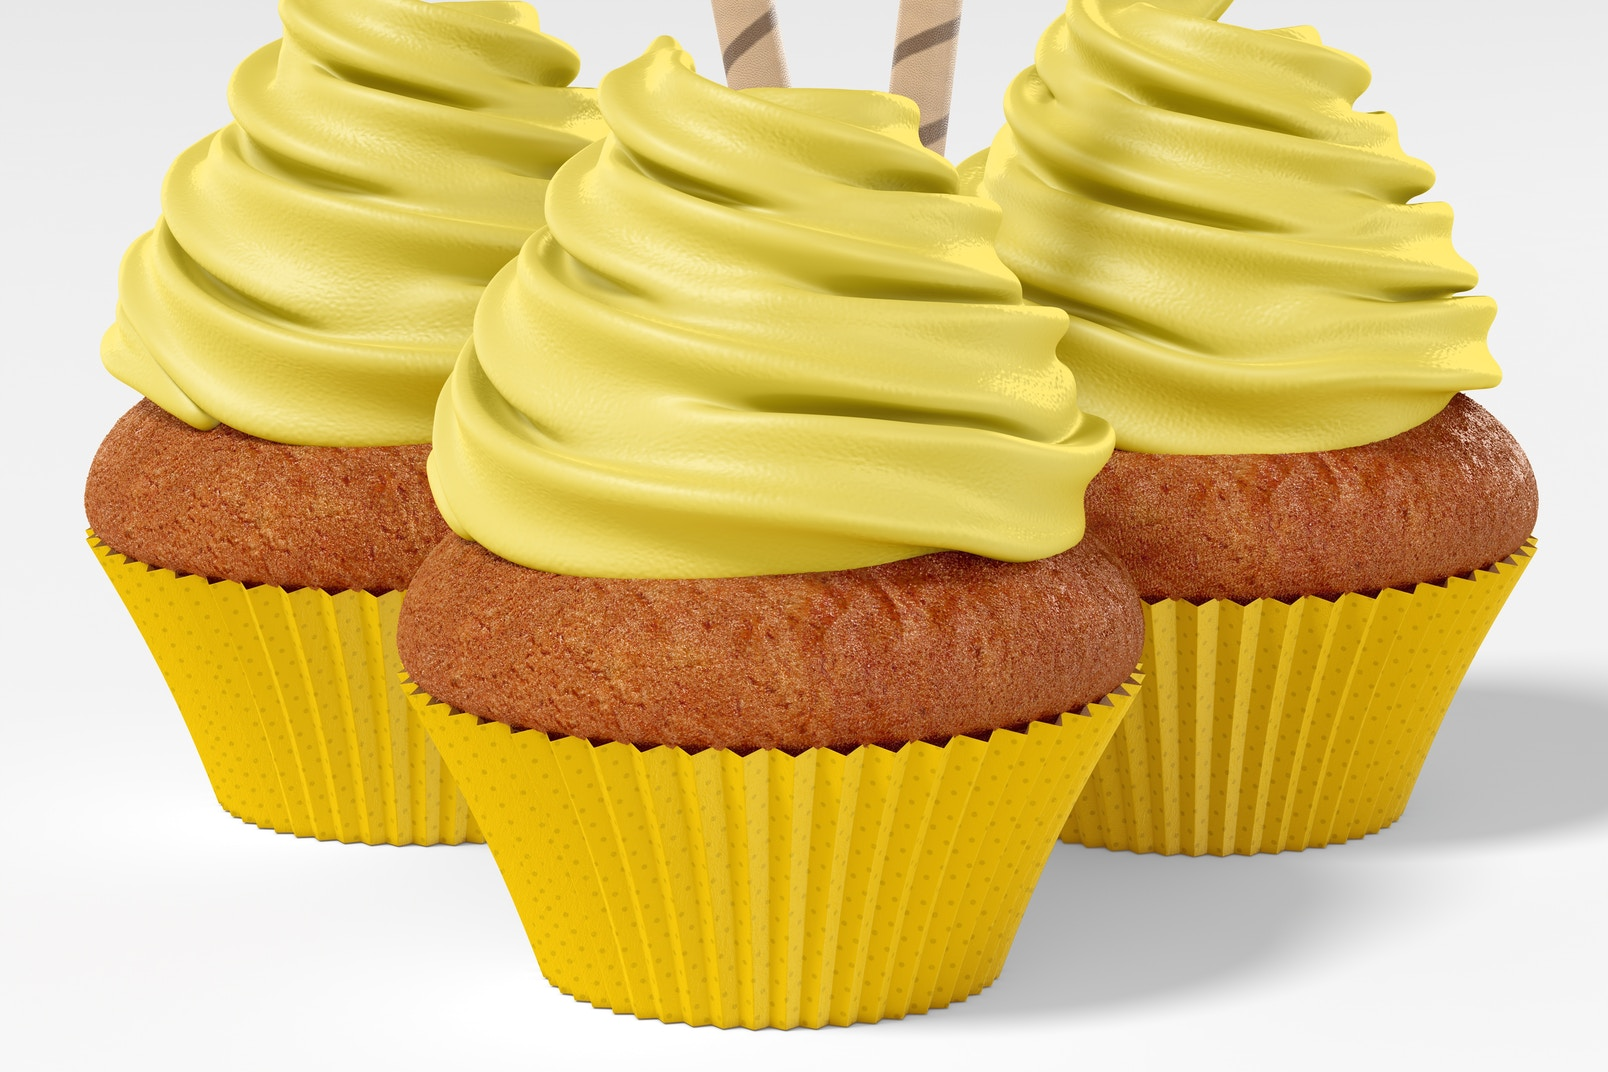 Cupcake with Paper Baking Cup Mockup, Close-Up